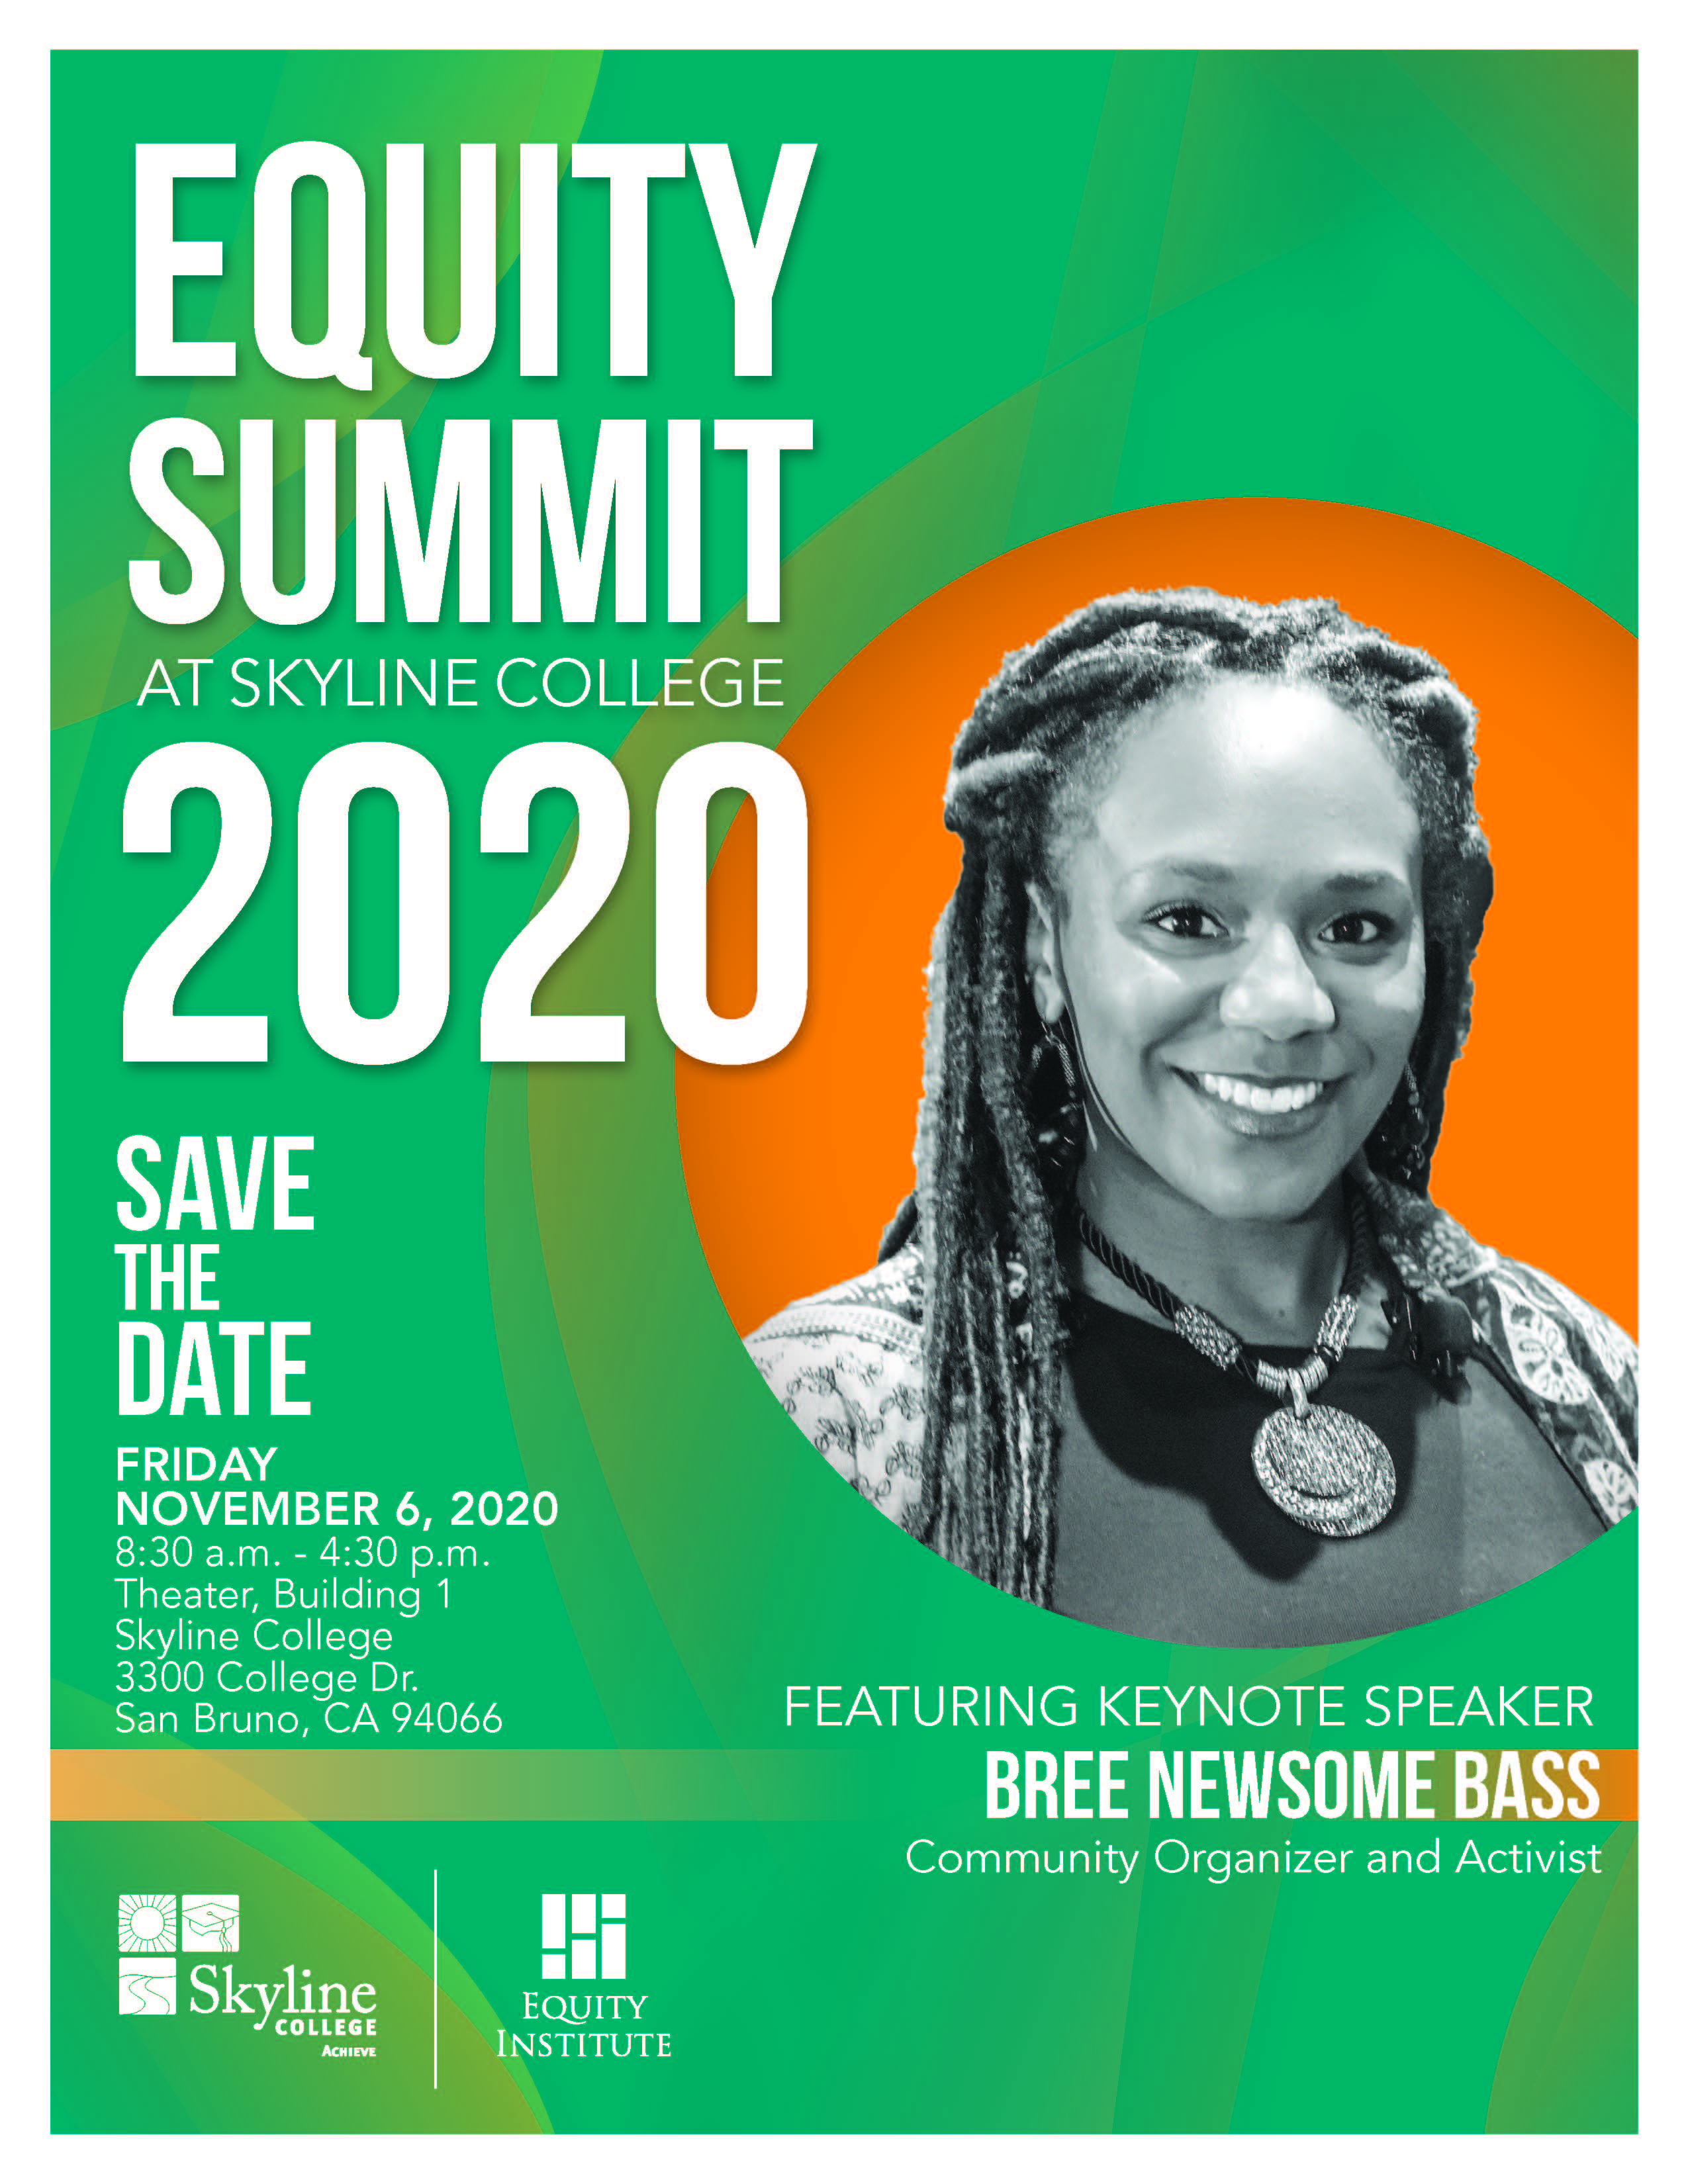 equity summit flyer 2020